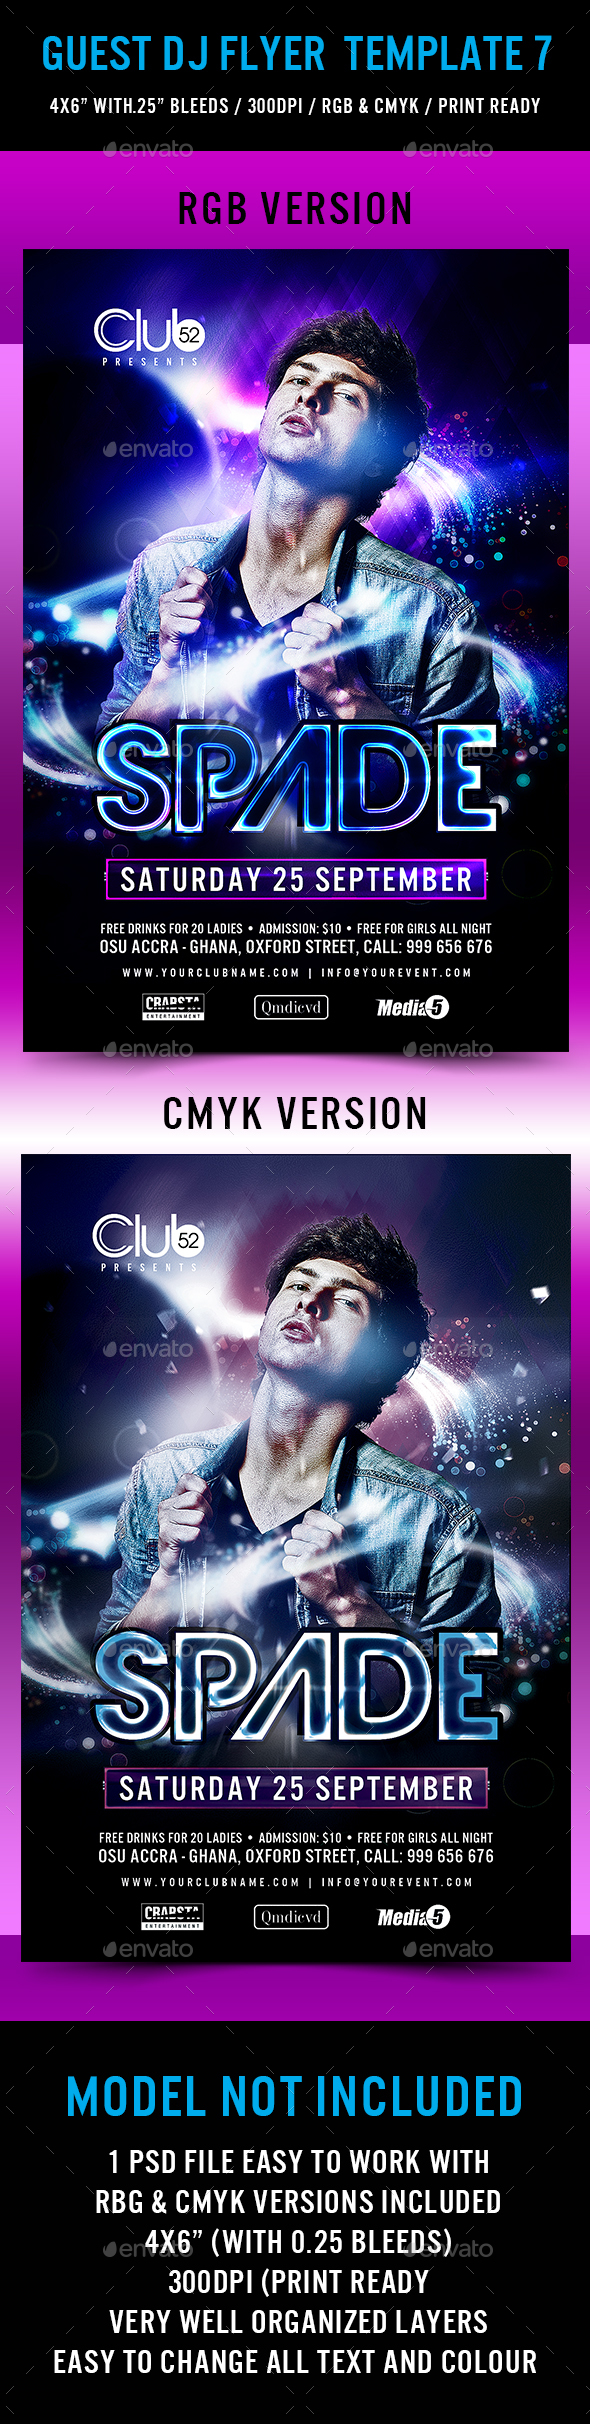 Guest DJ Flyer Template 7 - Clubs & Parties Events